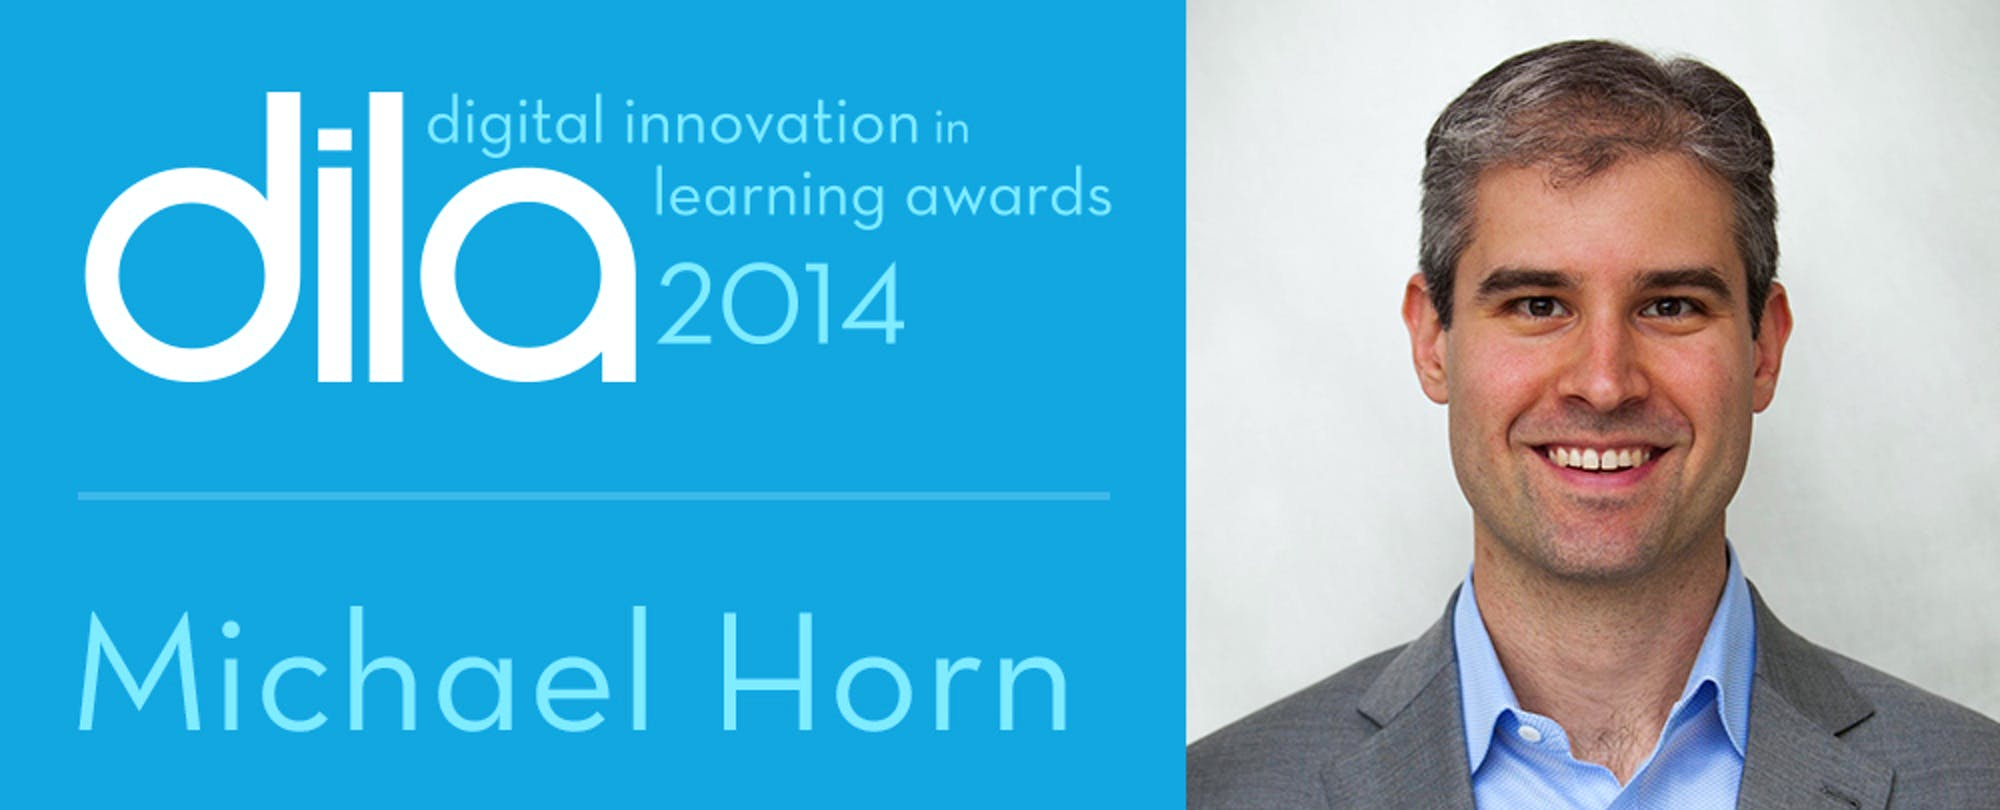 Michael Horn on 'Failing Fast' and Why Companies Should Understand Competency-Based Learning